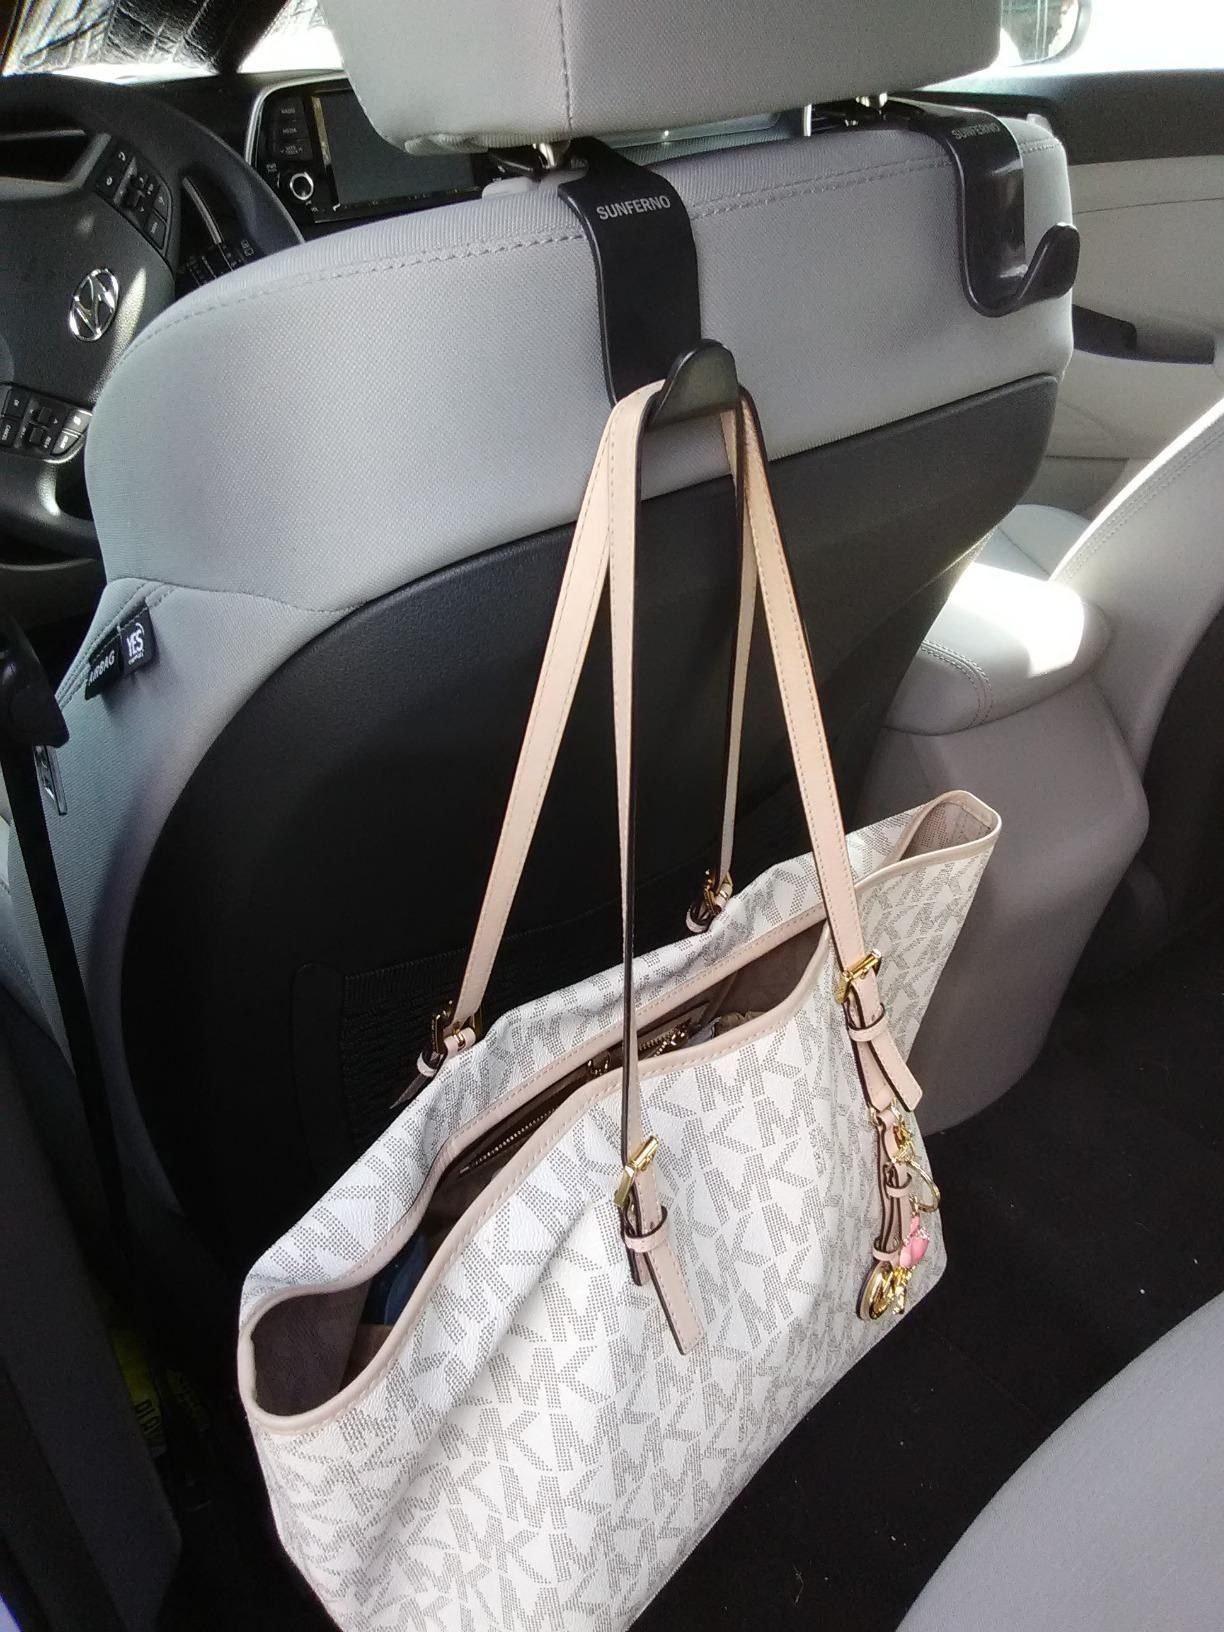 A Michael Kors handbag secured to a car headrest hook hanging from the back of the driver's seat